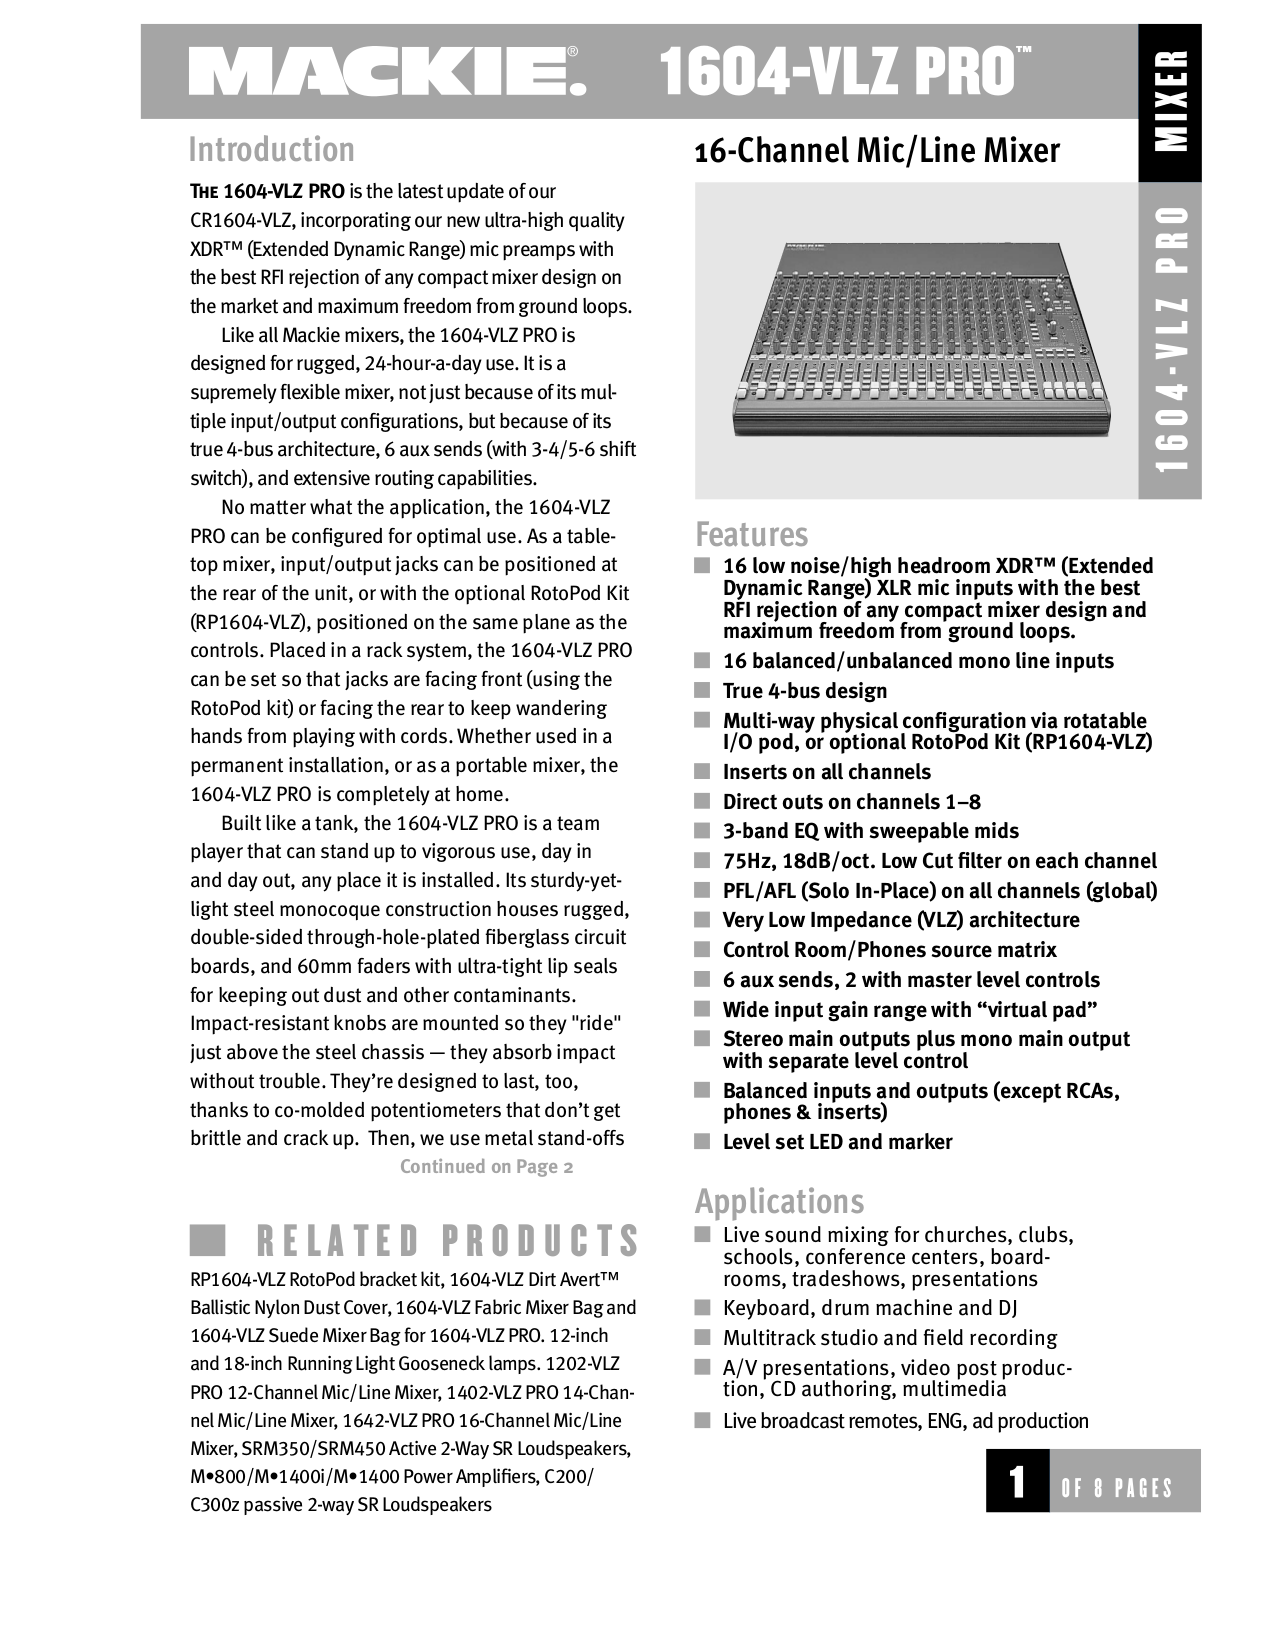 Download free pdf for Mackie 1402-VLZ Pro Line Mixer Other manual on